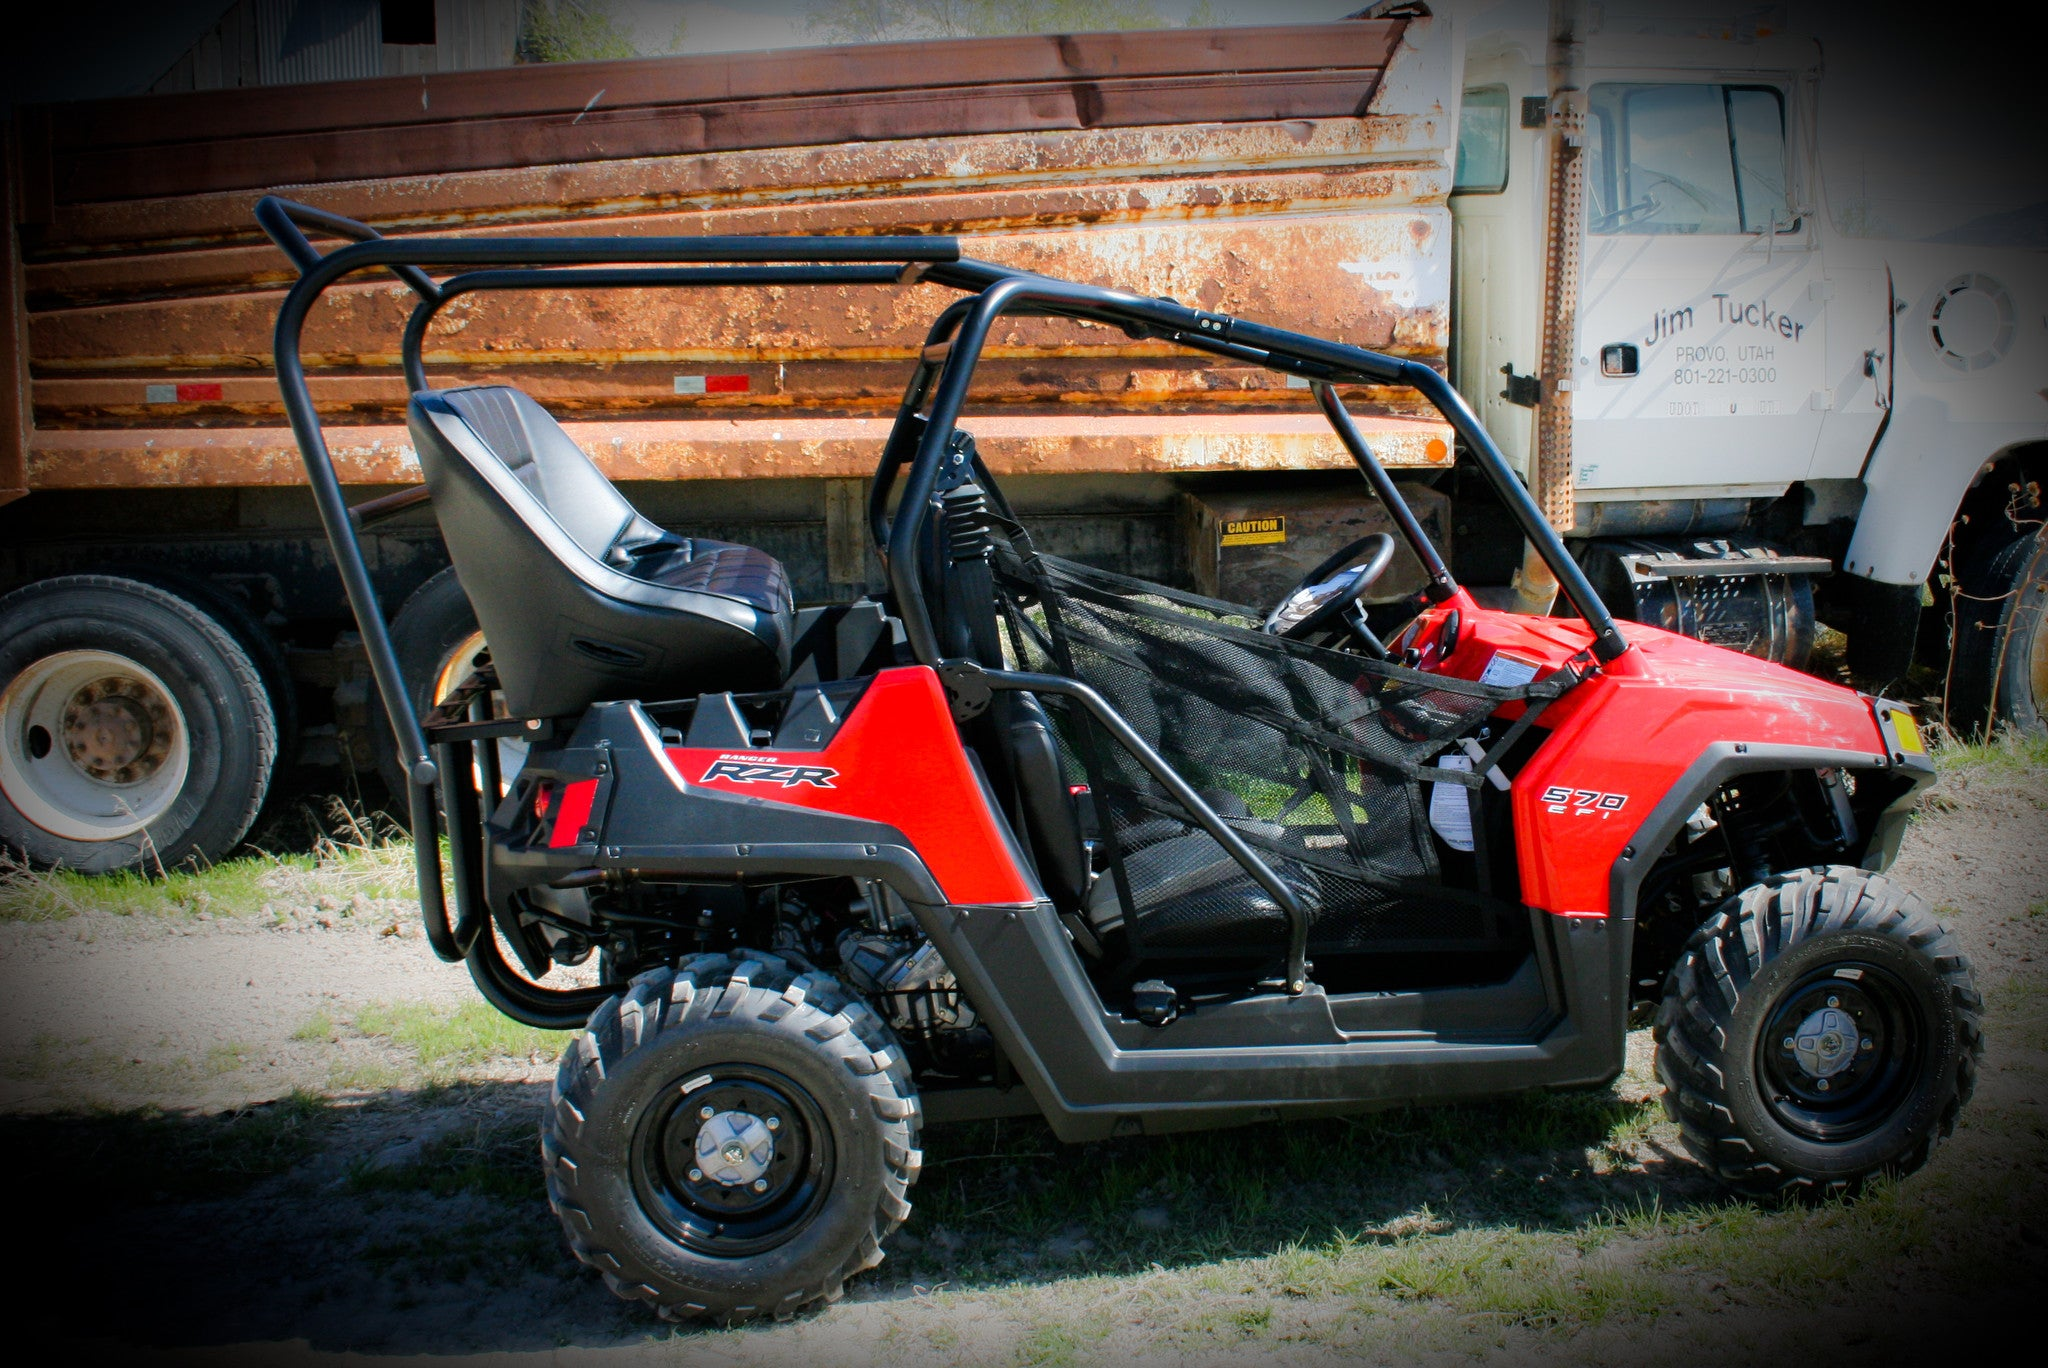 Rzr 570 Backseat And Roll Cage Kits Utv Accessories